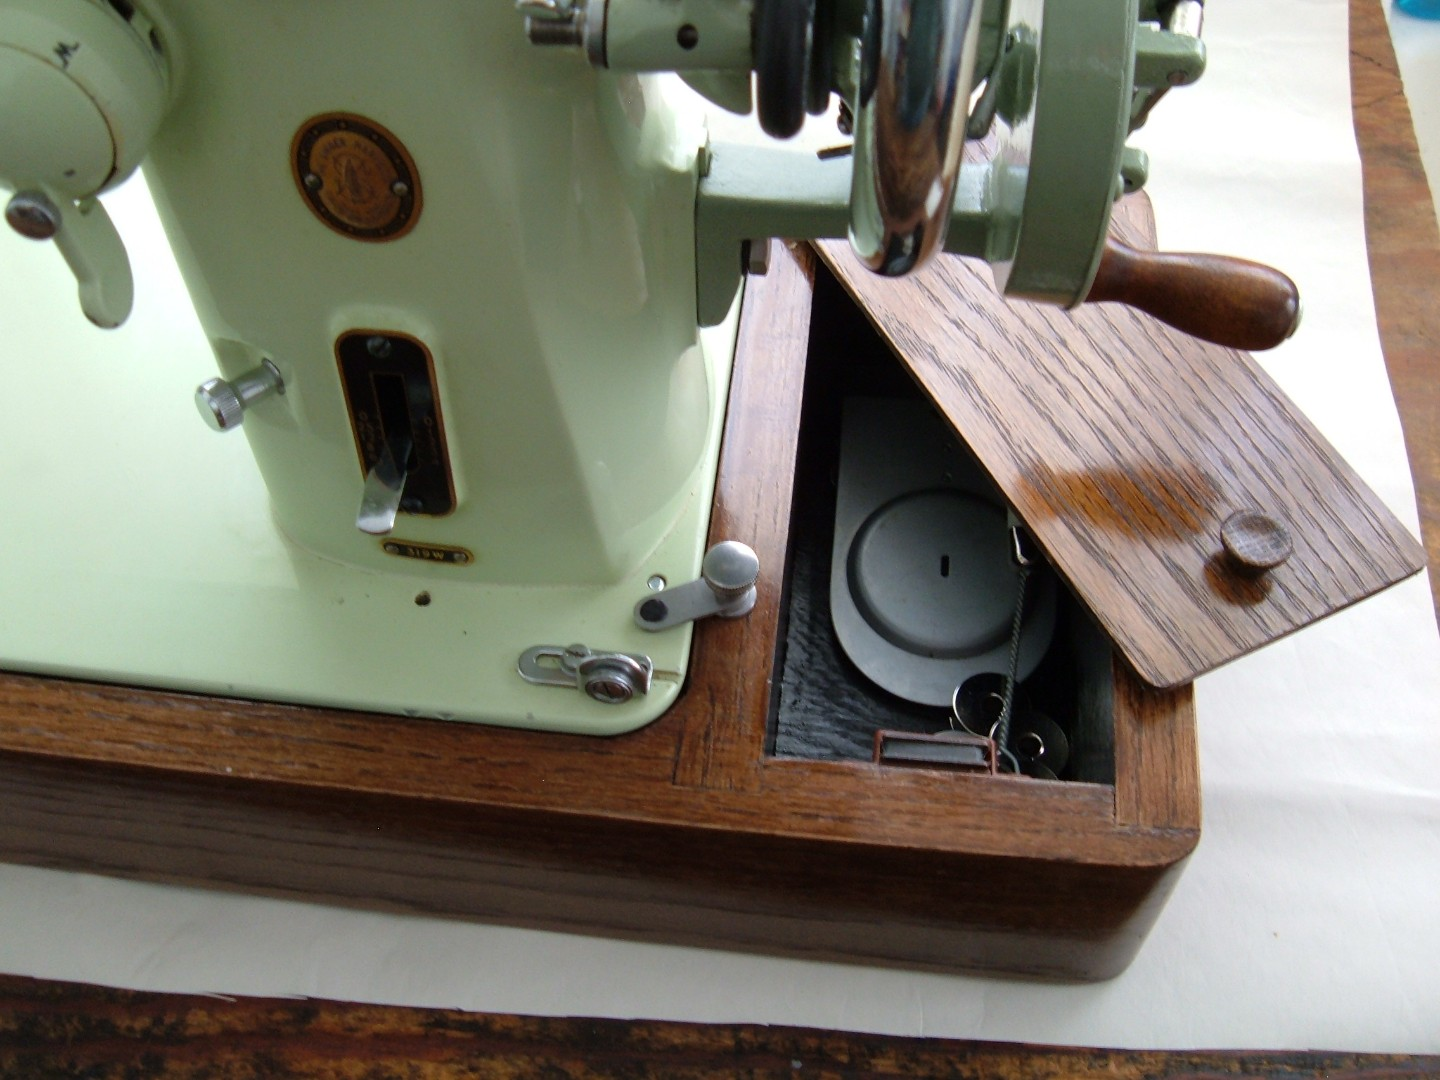 Singer 319w hand crank project case base with accessory box.jpg